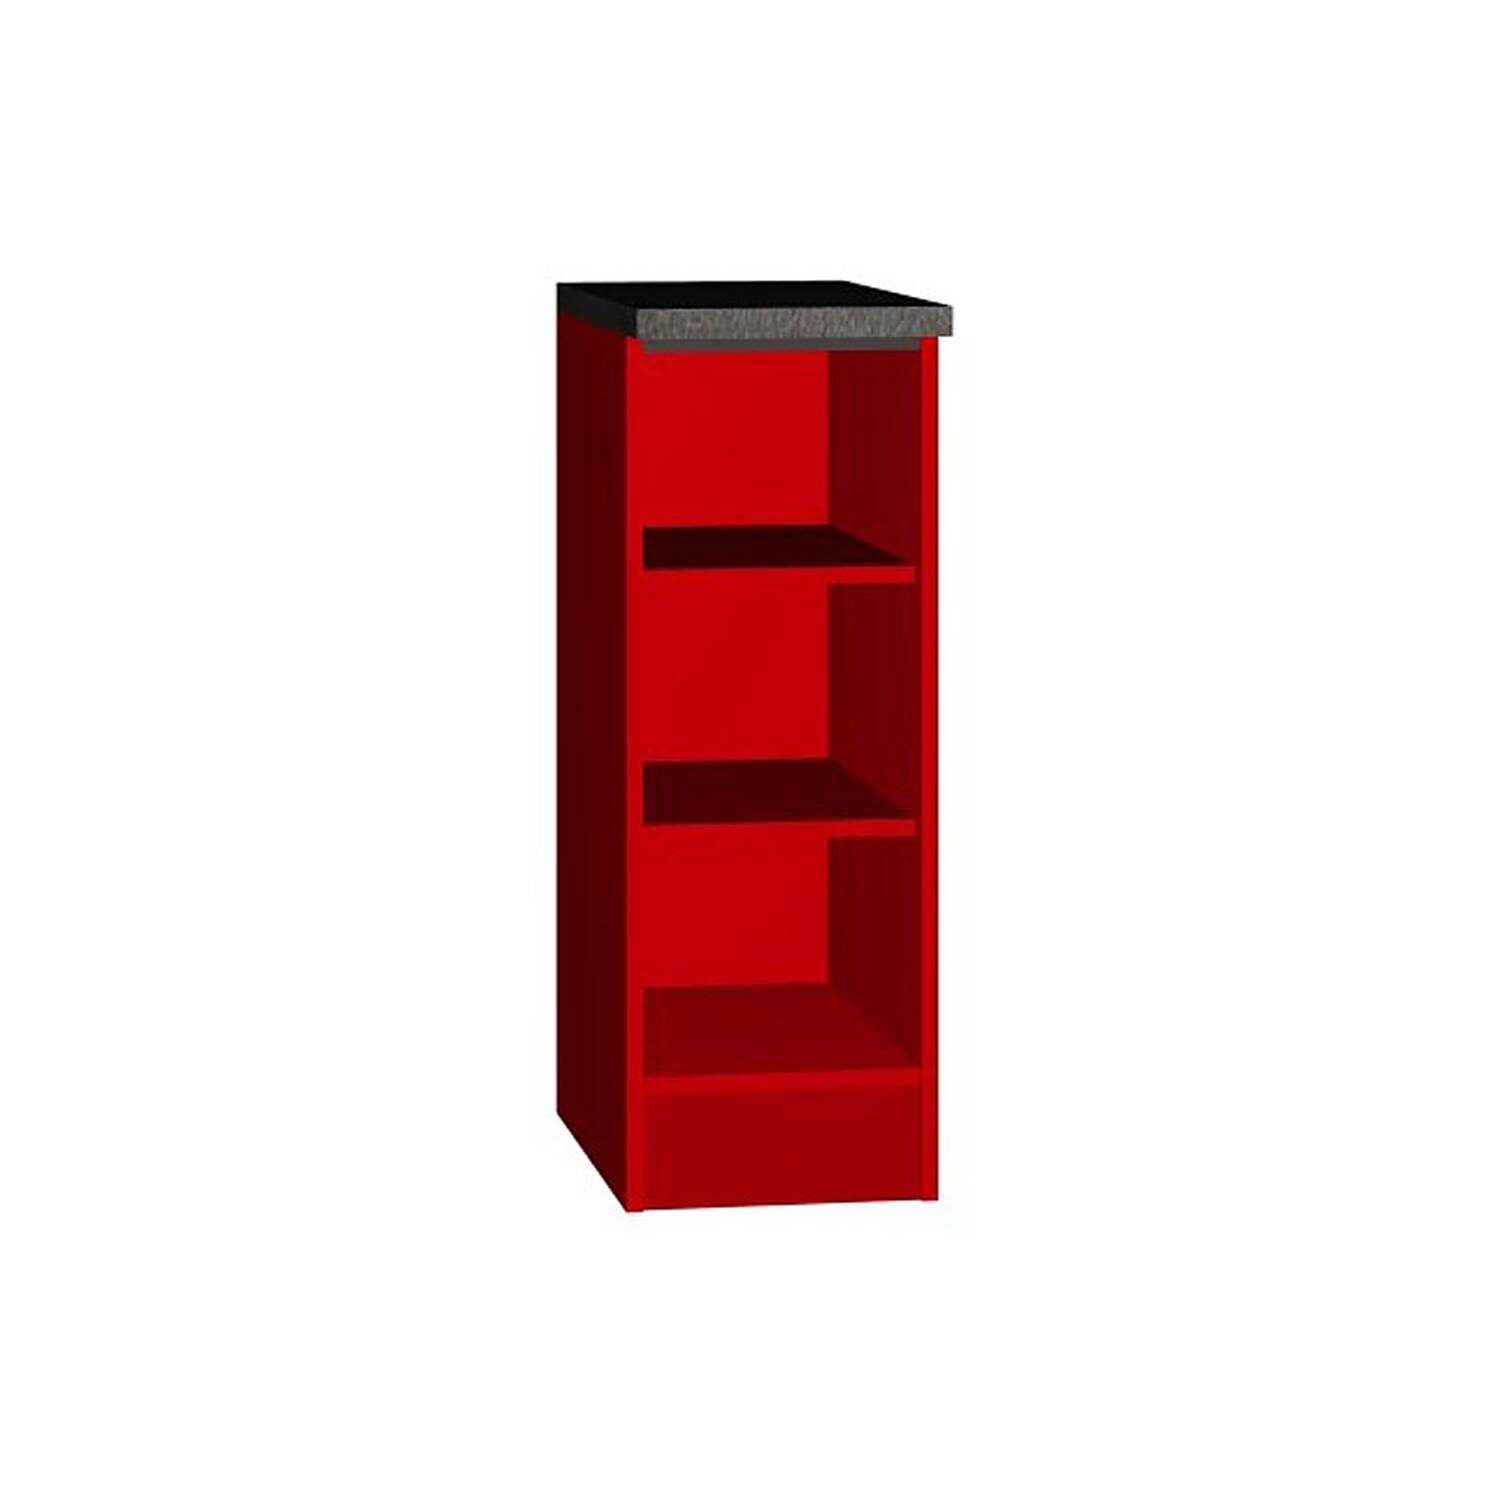 Unterschrank Regal Unterschrank Regal Stefano 03 In Rot B X H X T Ca 30 X 85 X 40cm